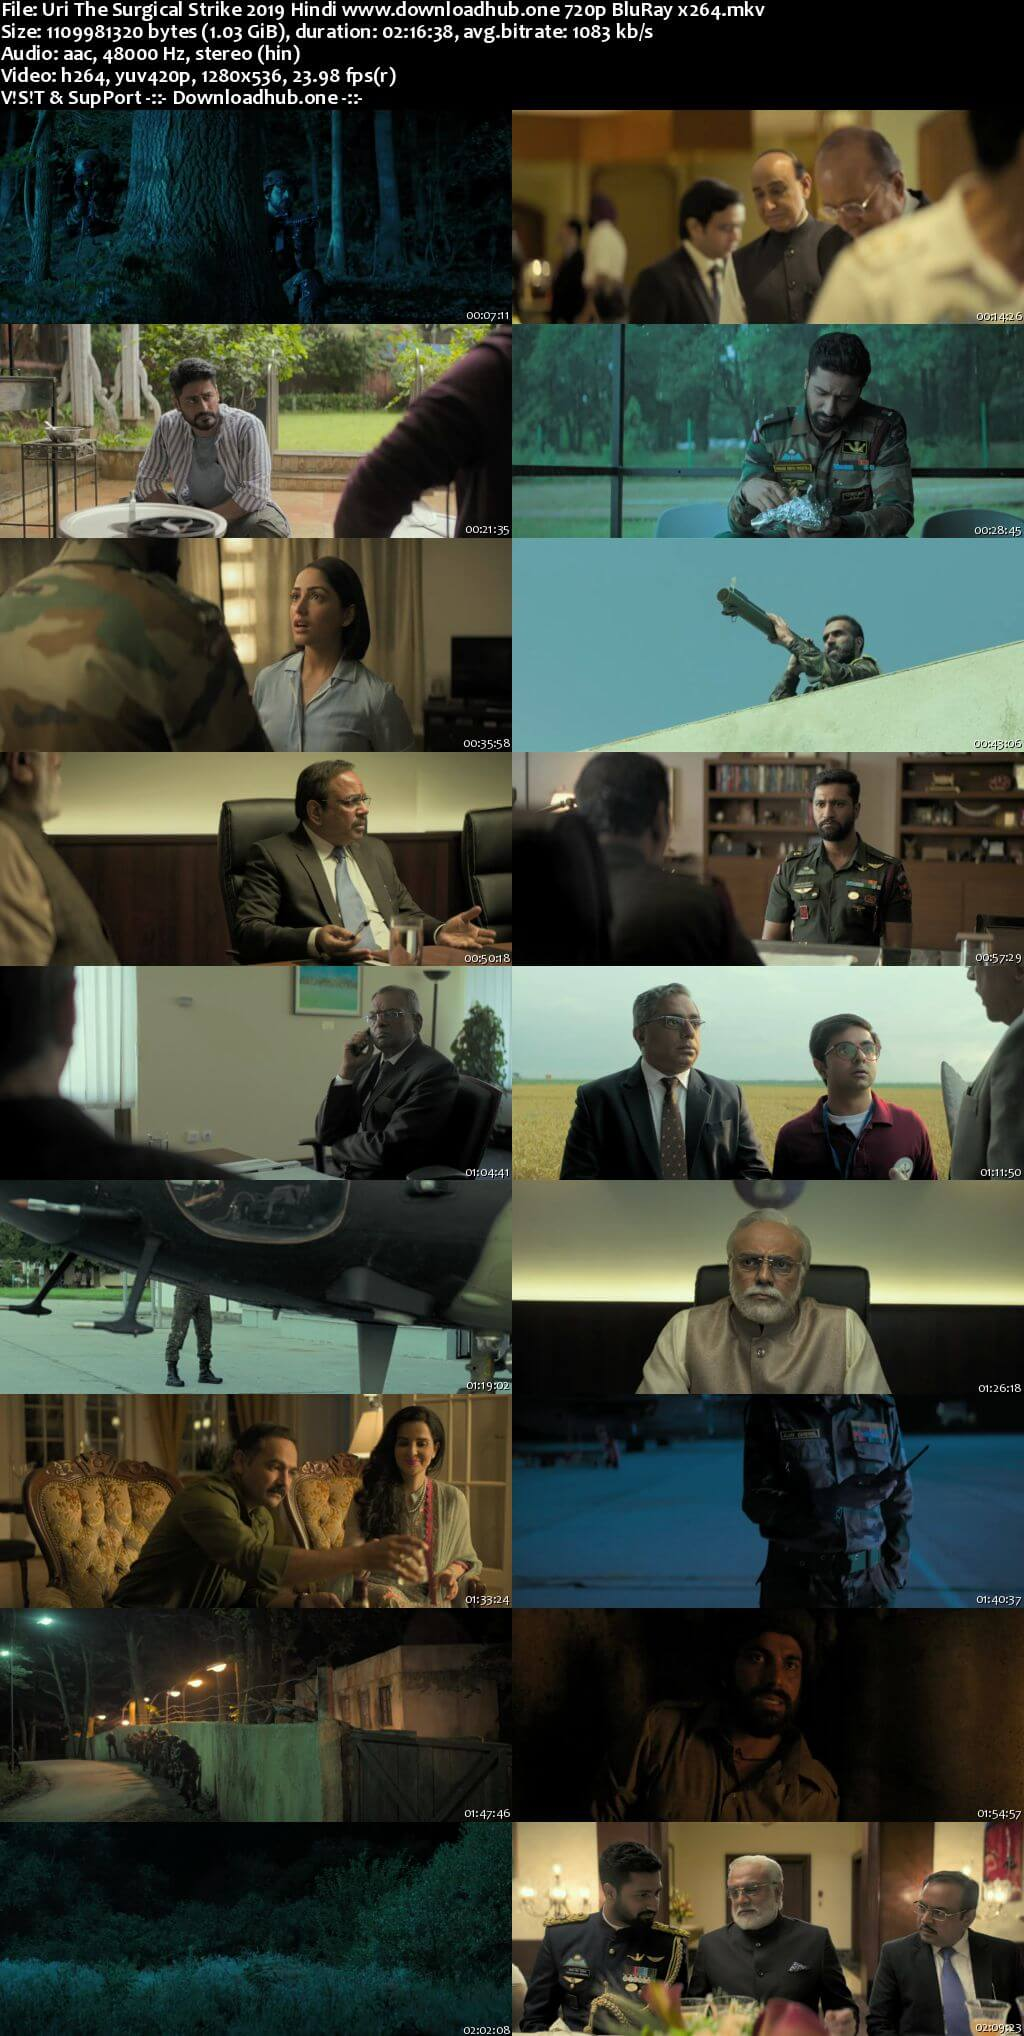 Uri The Surgical Strike 2019 Hindi 720p BluRay x264